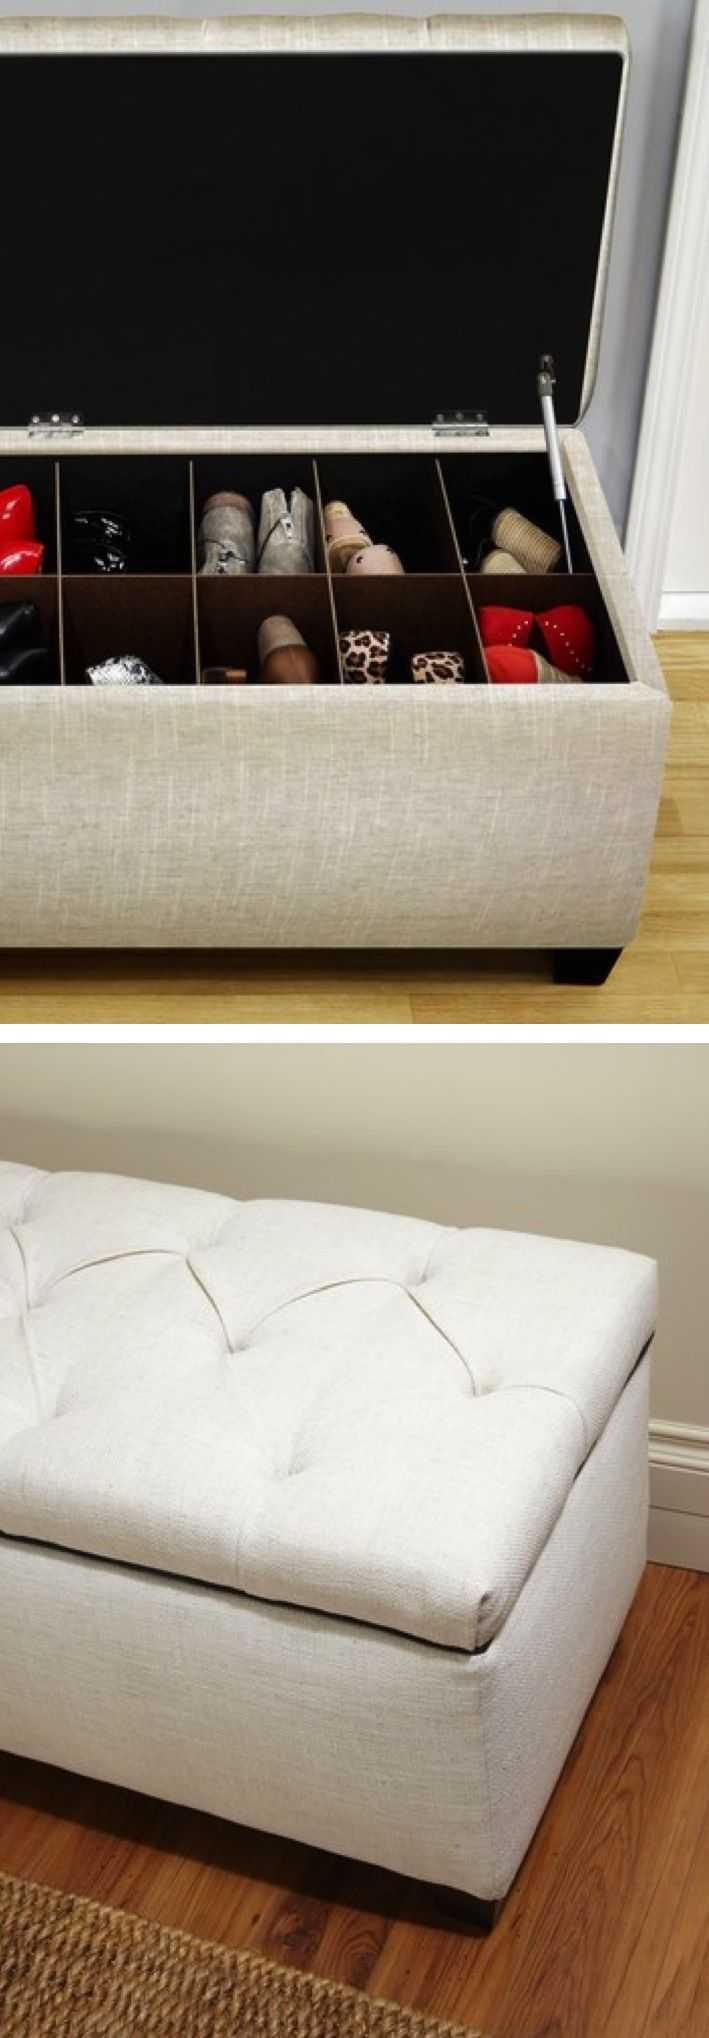 Padded Benches Living Room 17 Best Ideas About Shoe Storage Benches On Pinterest Bed Bench